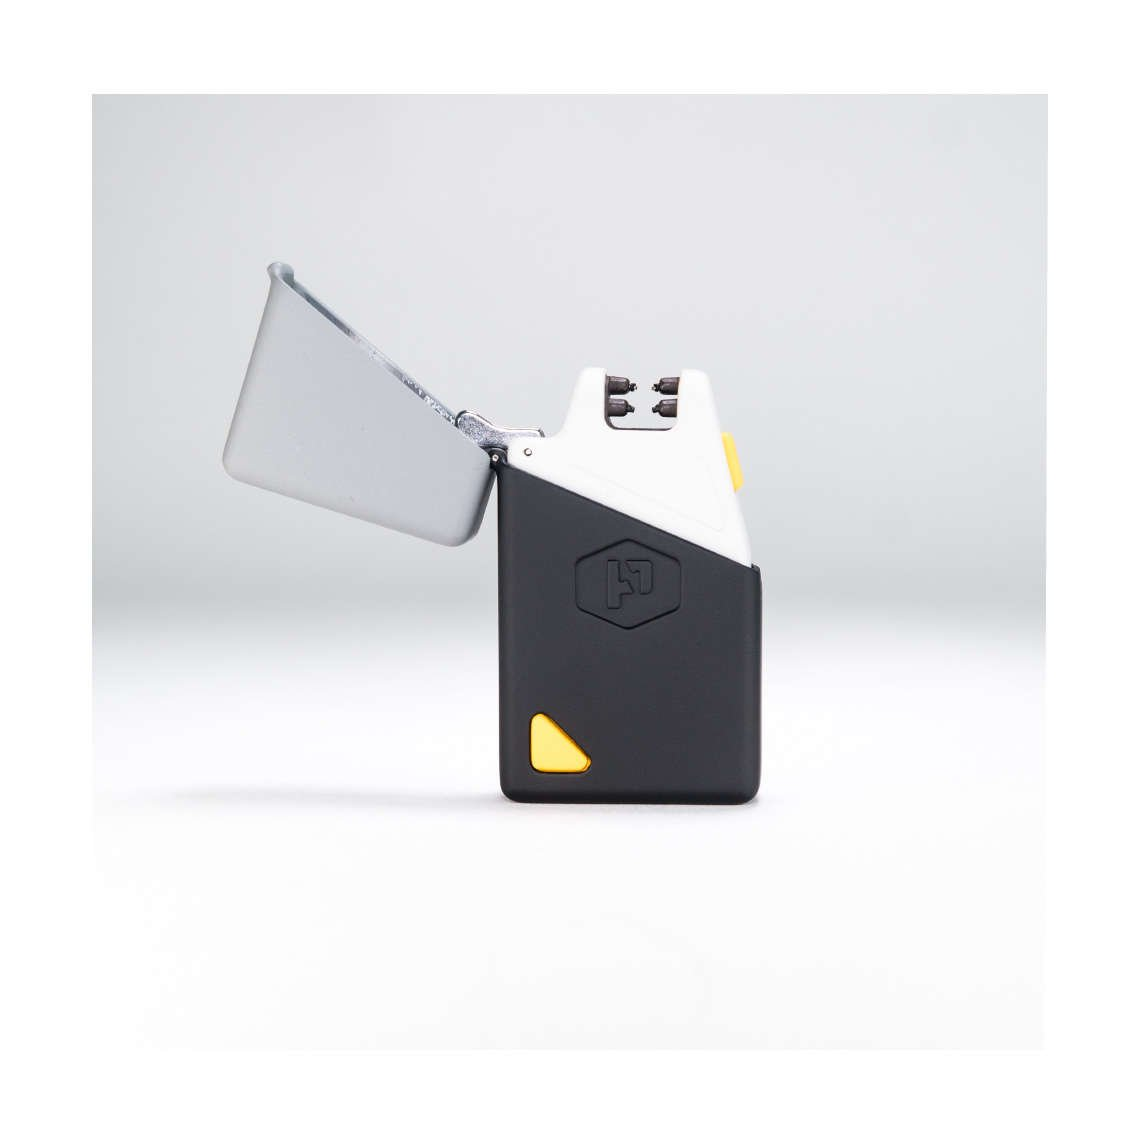 Sparkr Mini Electric Lighter and flashlight